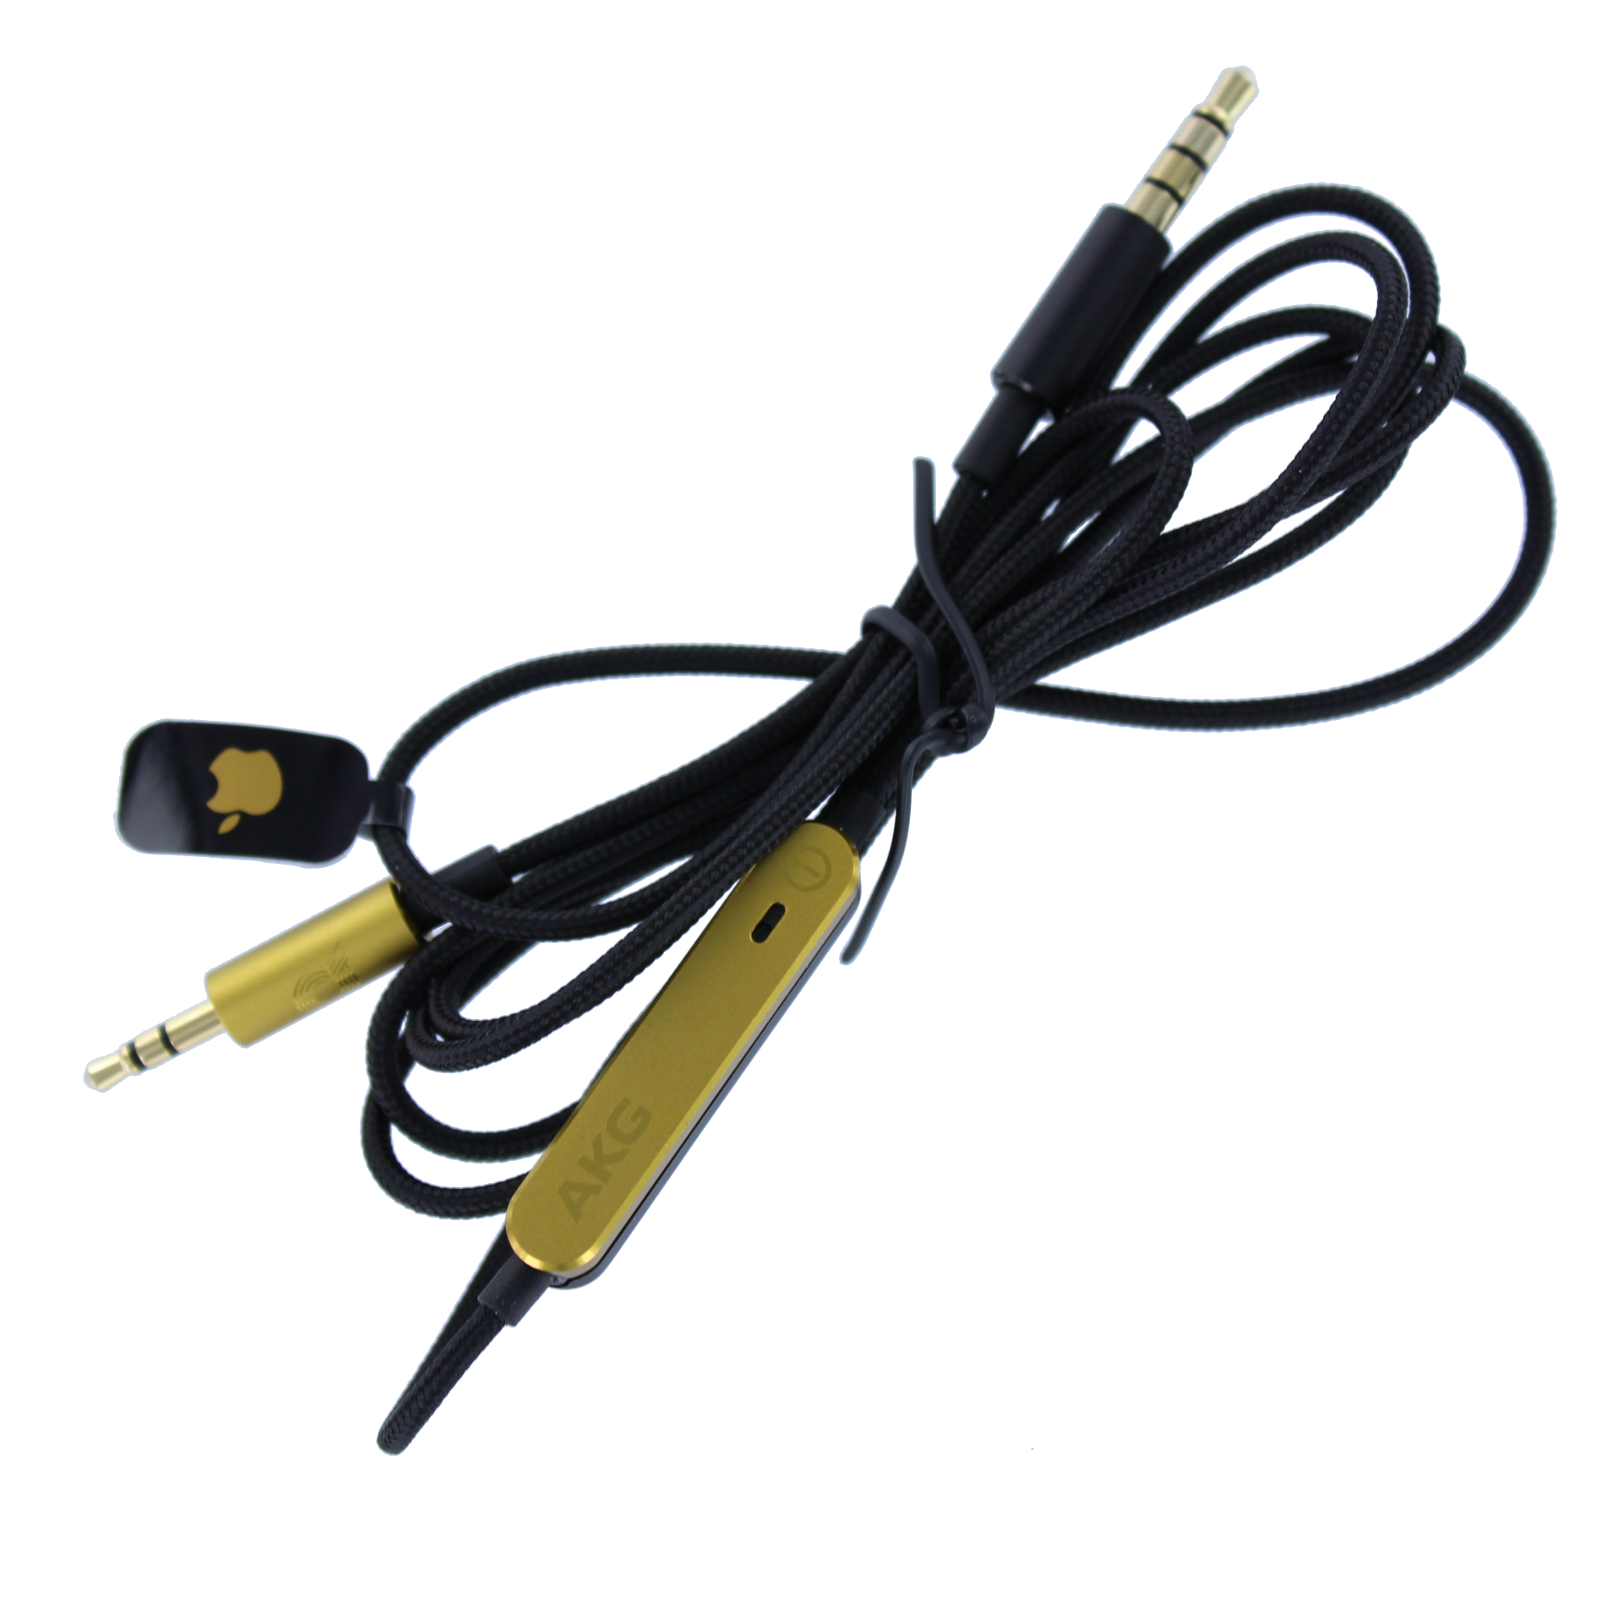 AKG Audio cable with remote for N90 - Black - Audio cable 120 cm - Hero